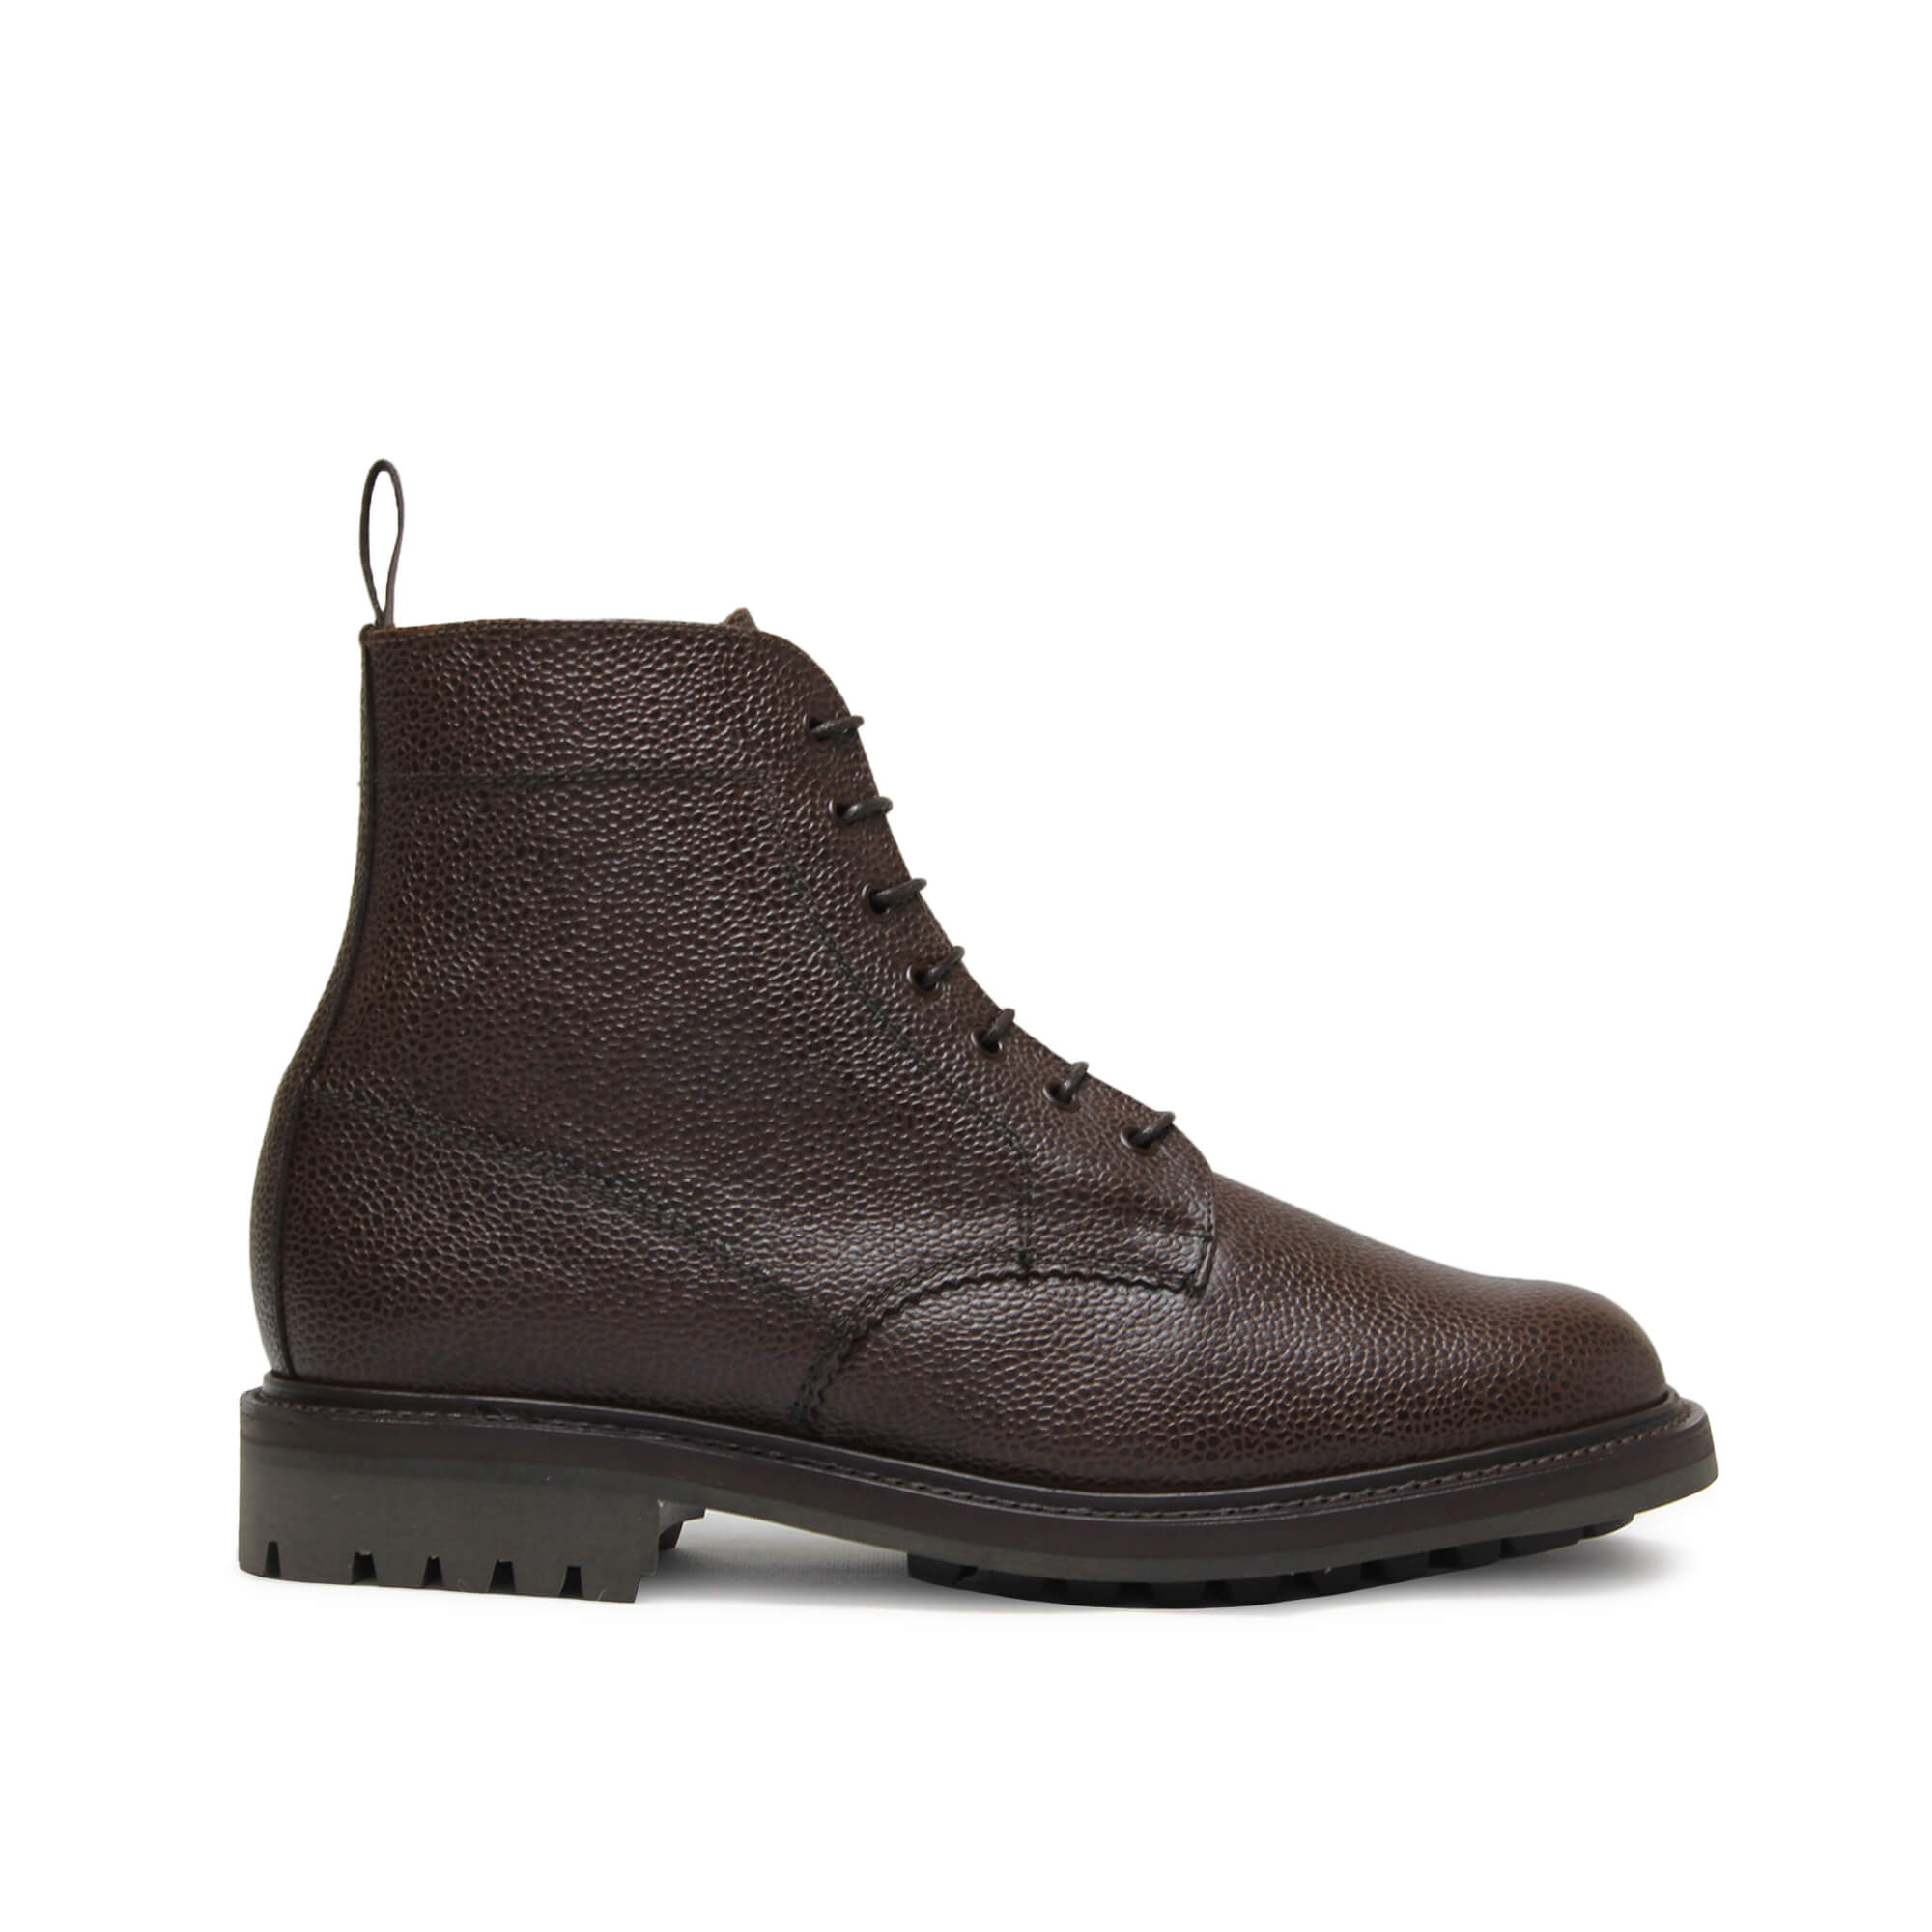 Sanders Men's Kelso Leather Lace-Up Boots 8366/WG